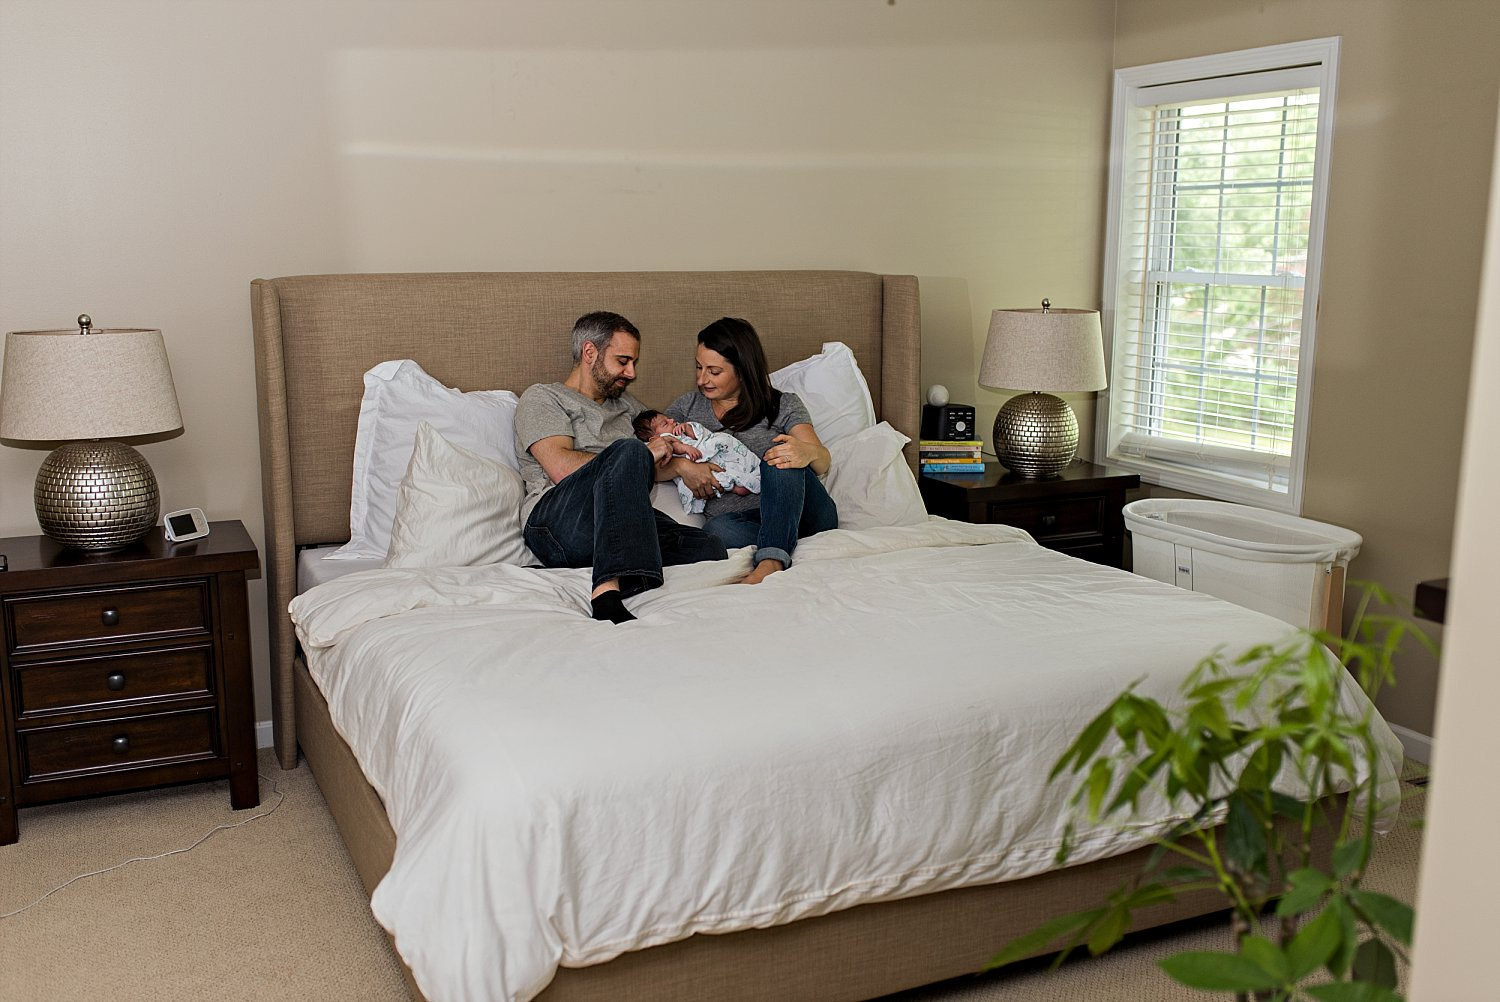 newborn naturally posed with mom and dads bed during at home newborn photography CT